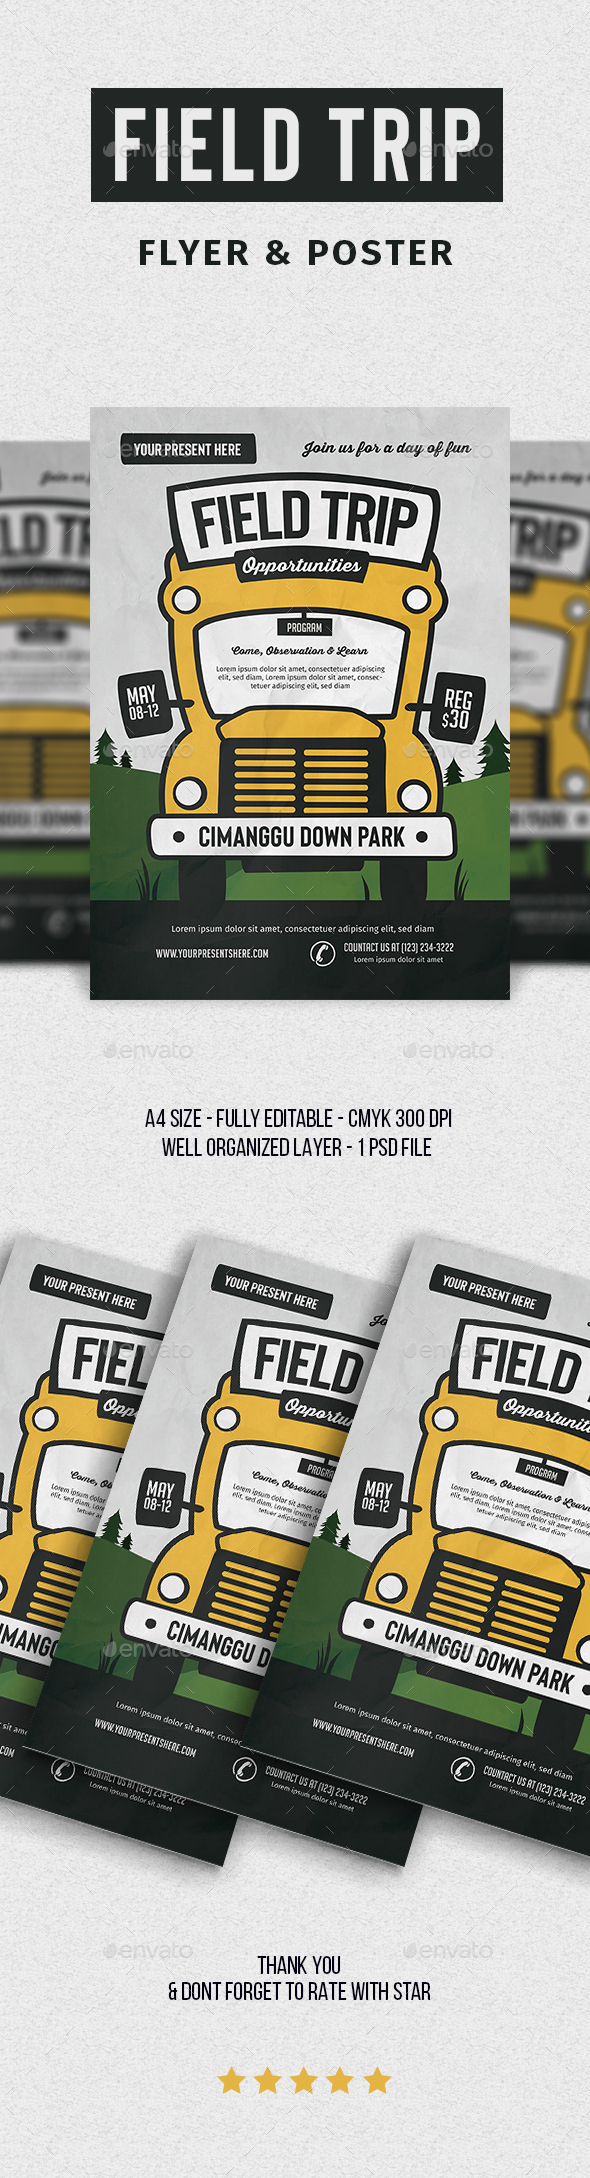 Field Trip Event Flyer - Events Flyers